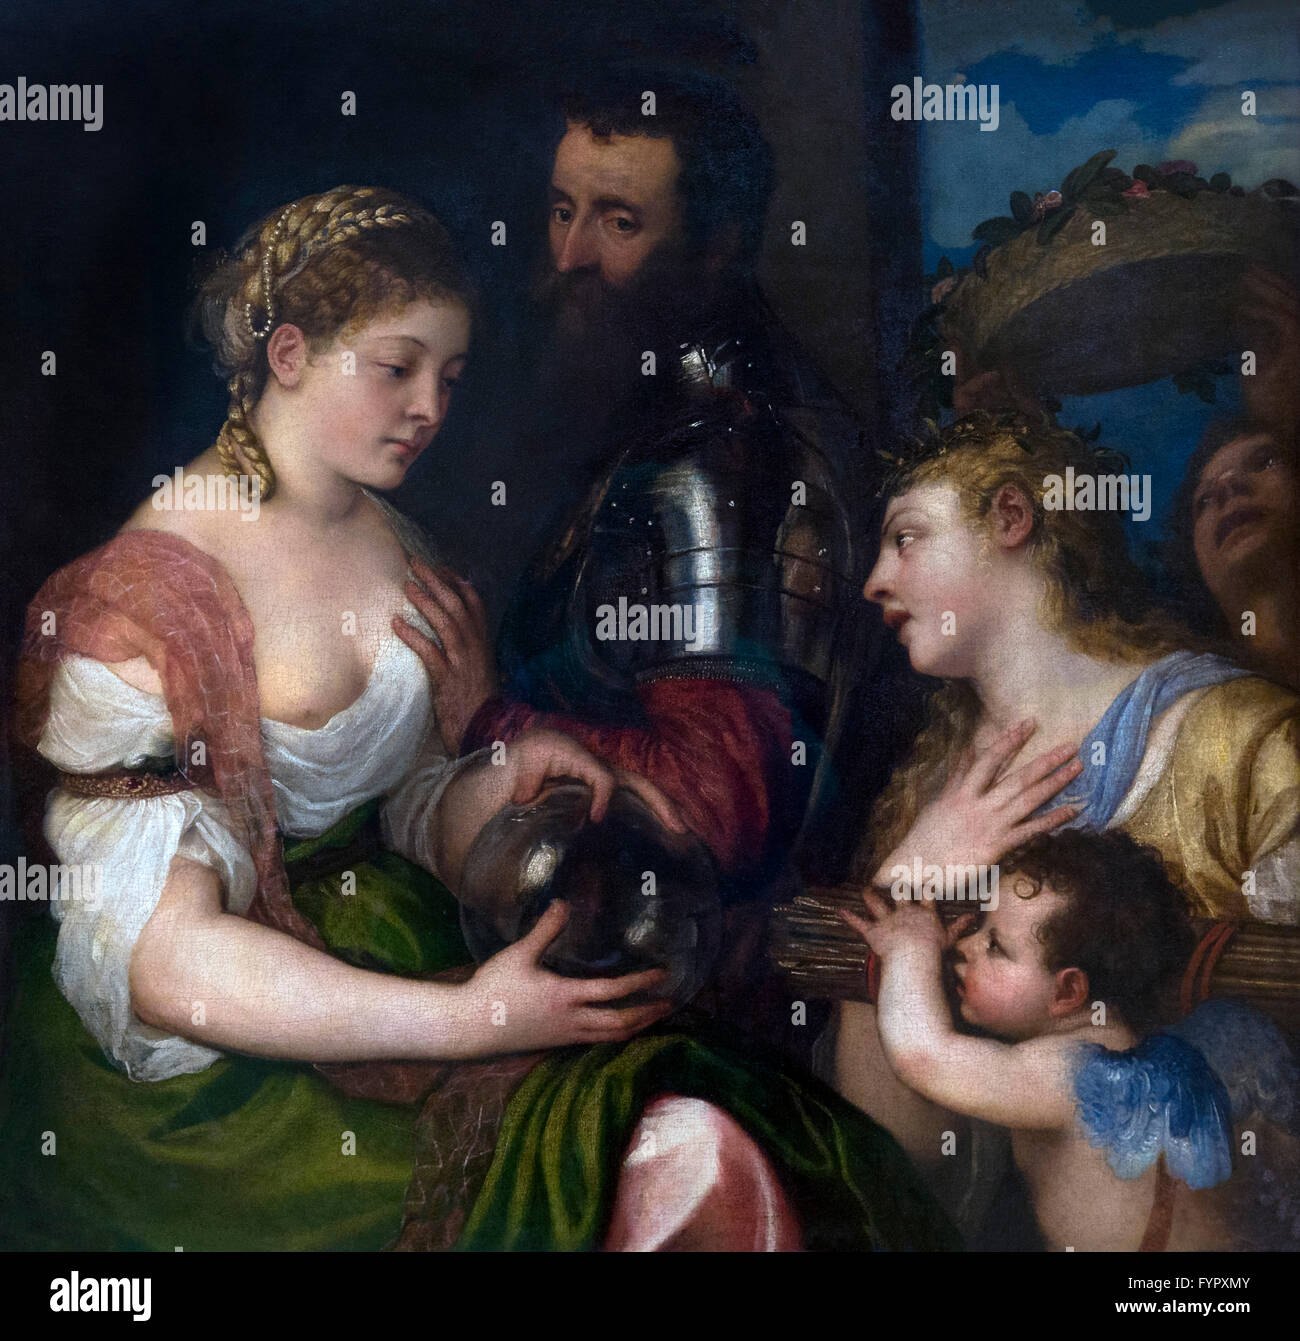 Allegory of Married Life, by Titian, circa 1530, Musee du Louvre, Paris France, Europe - Stock Image